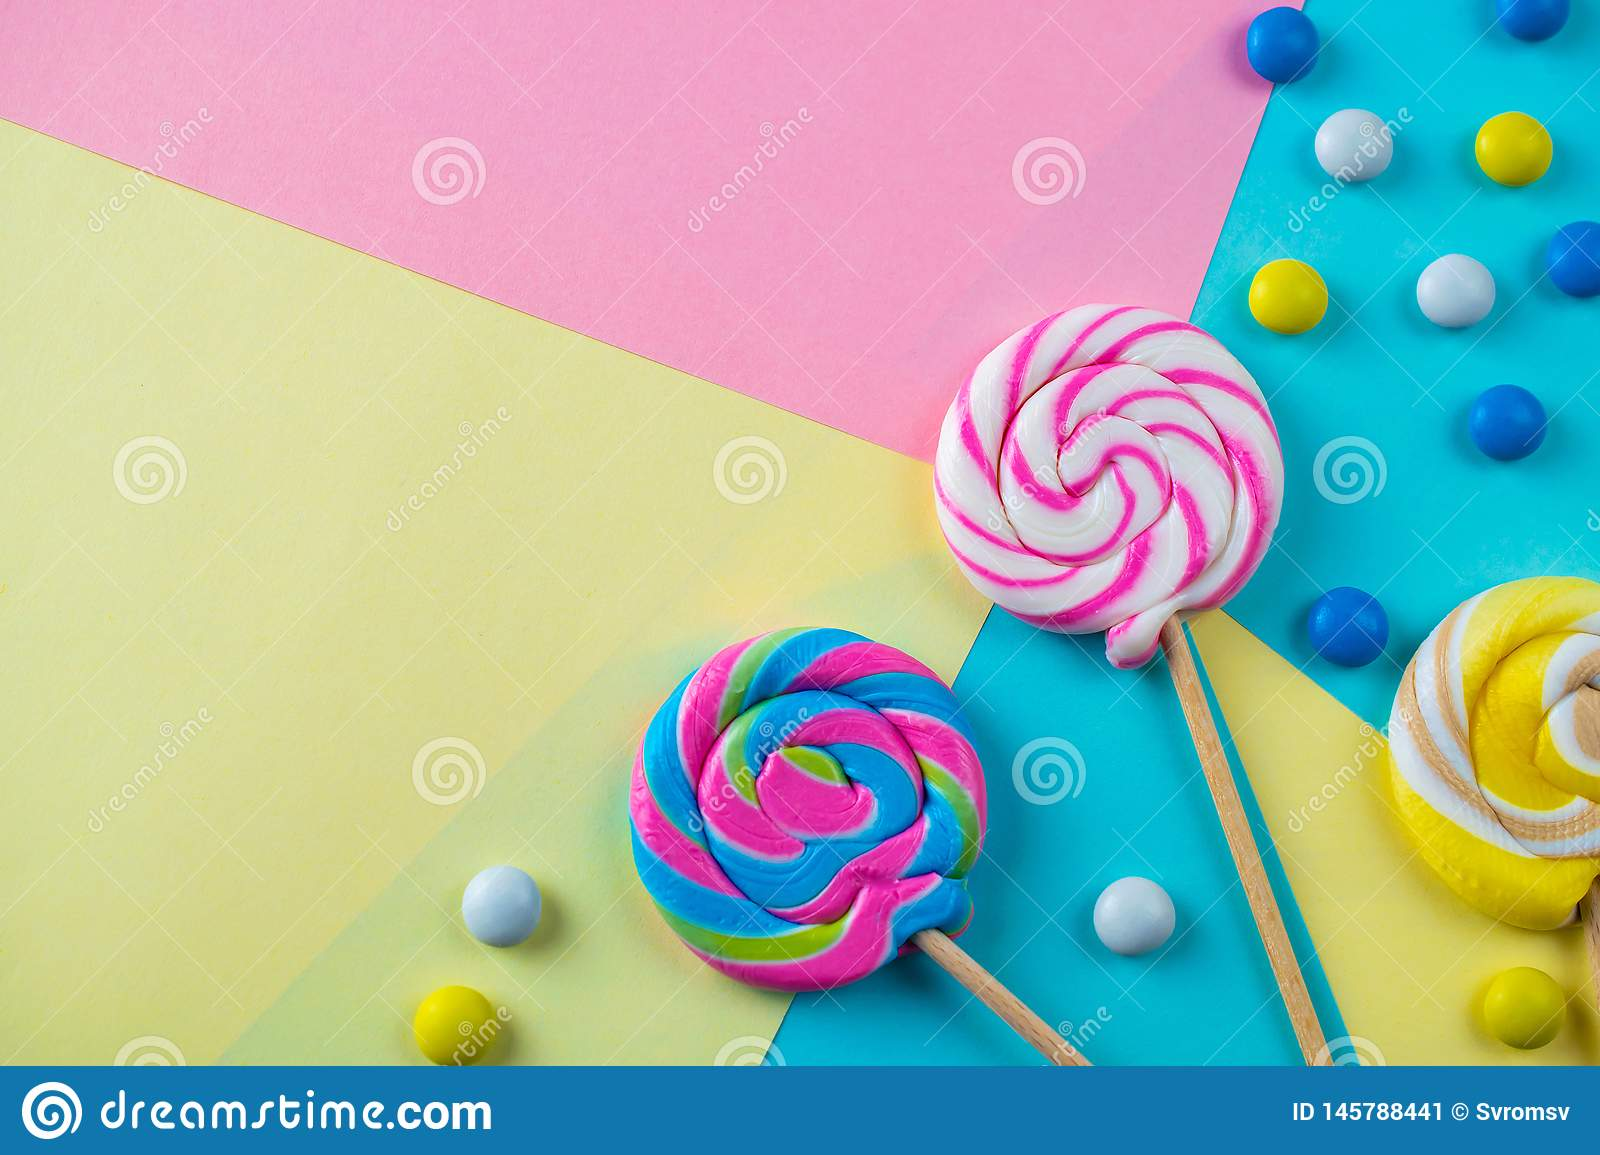 Bright colorful sweet lollipops and candies background flat lay